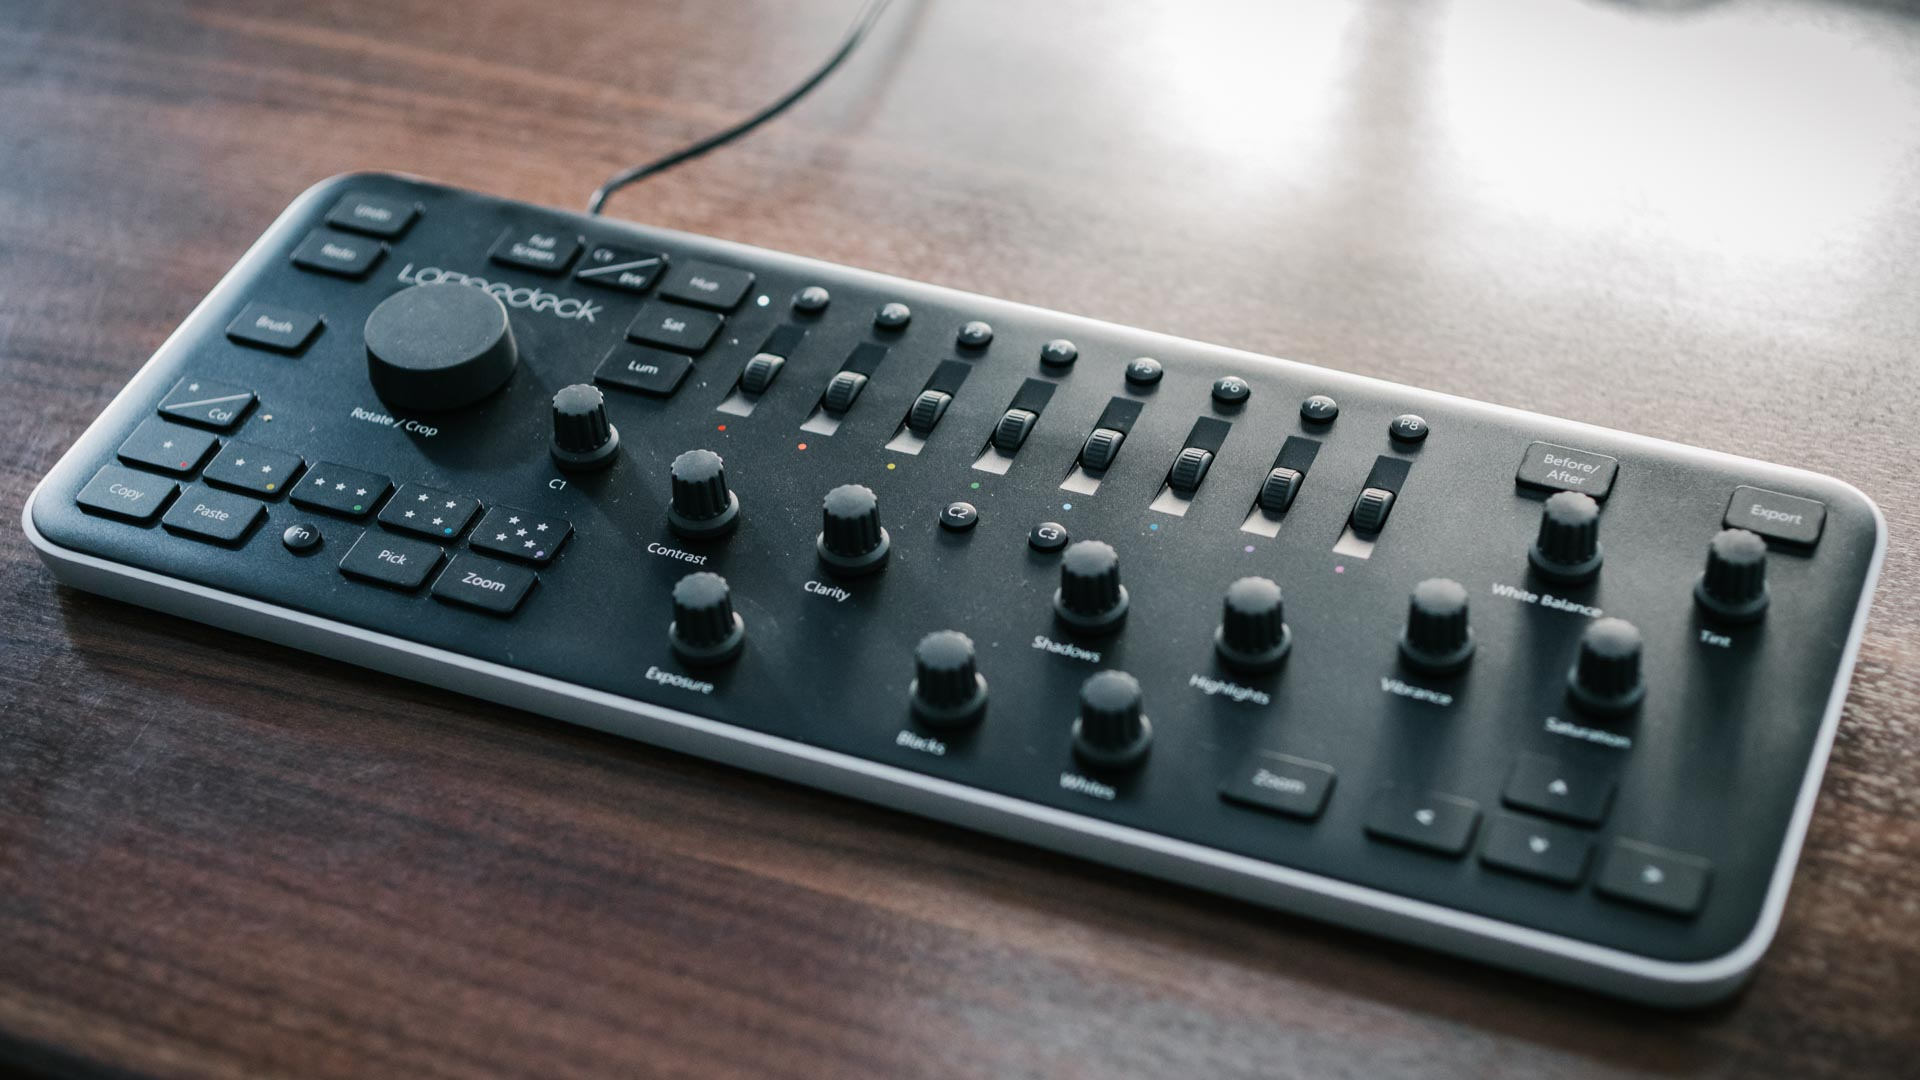 Loupedeck review the dedicated photo editing controller for adobe loupedeck review editing console side ccuart Images